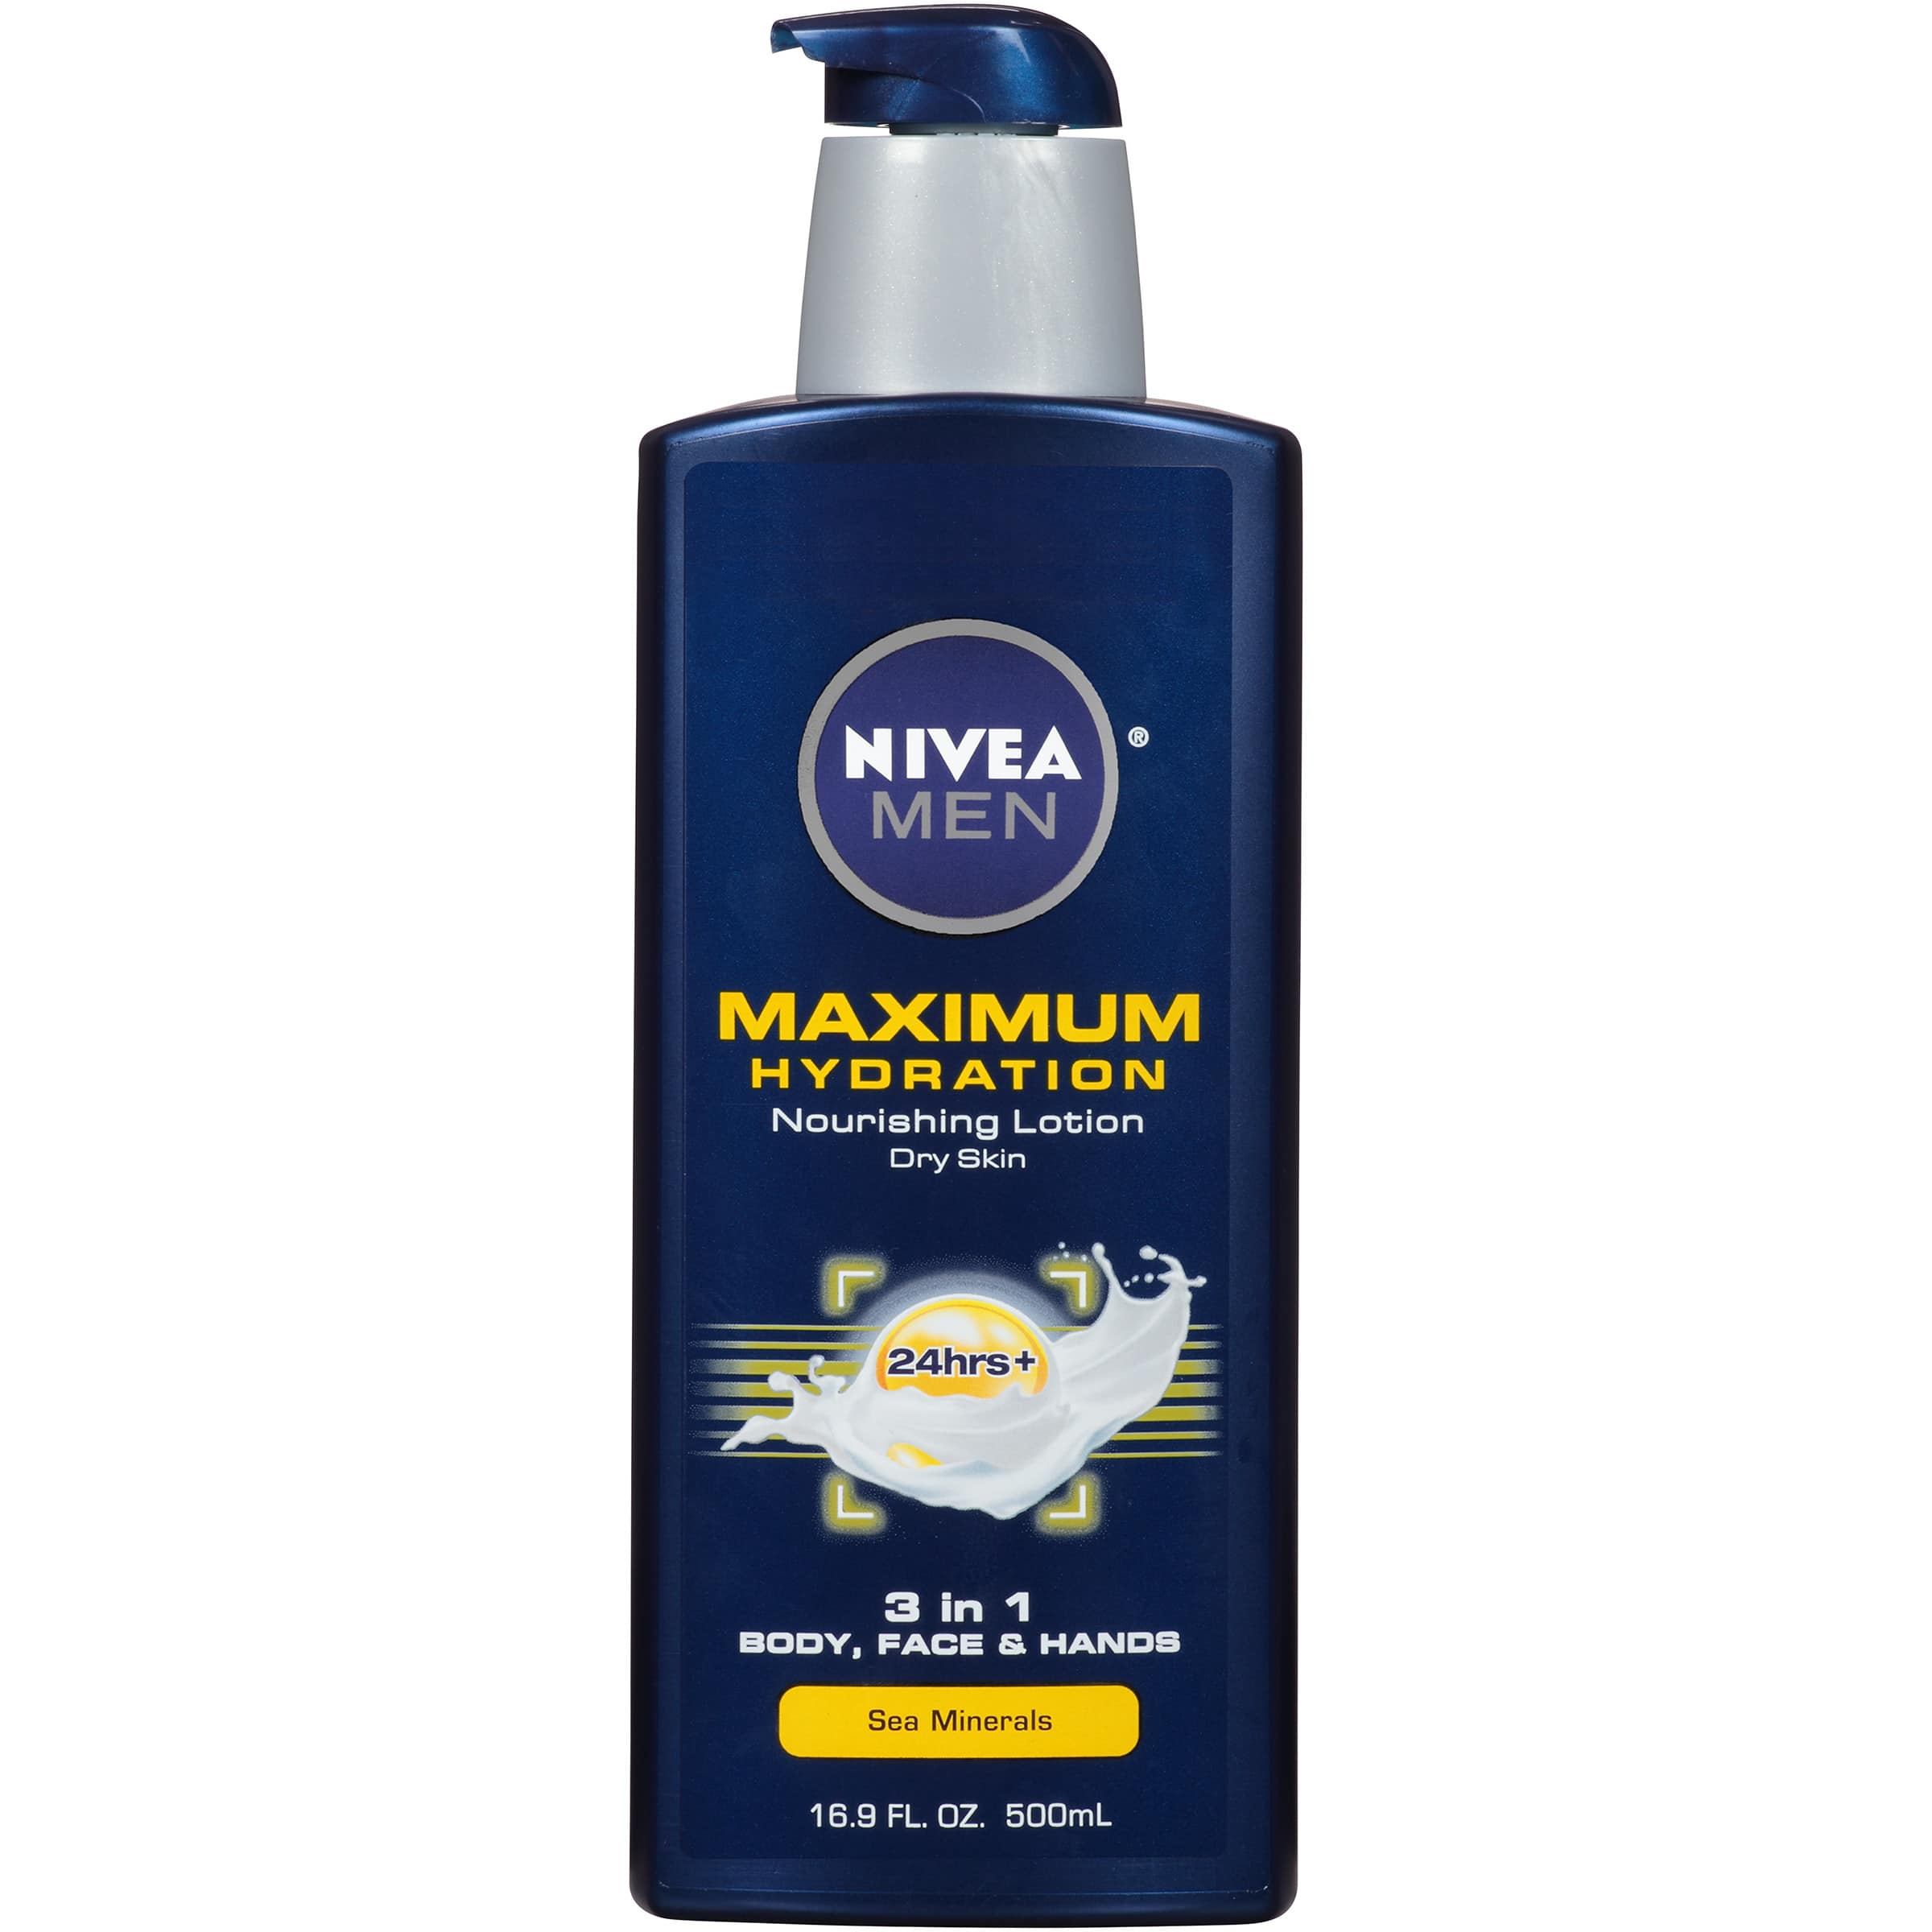 2 Quantity of NIVEA Men Maximum Hydration 3 in 1 Nourishing Lotion 16.9 fl. oz. $7.67 with S&S